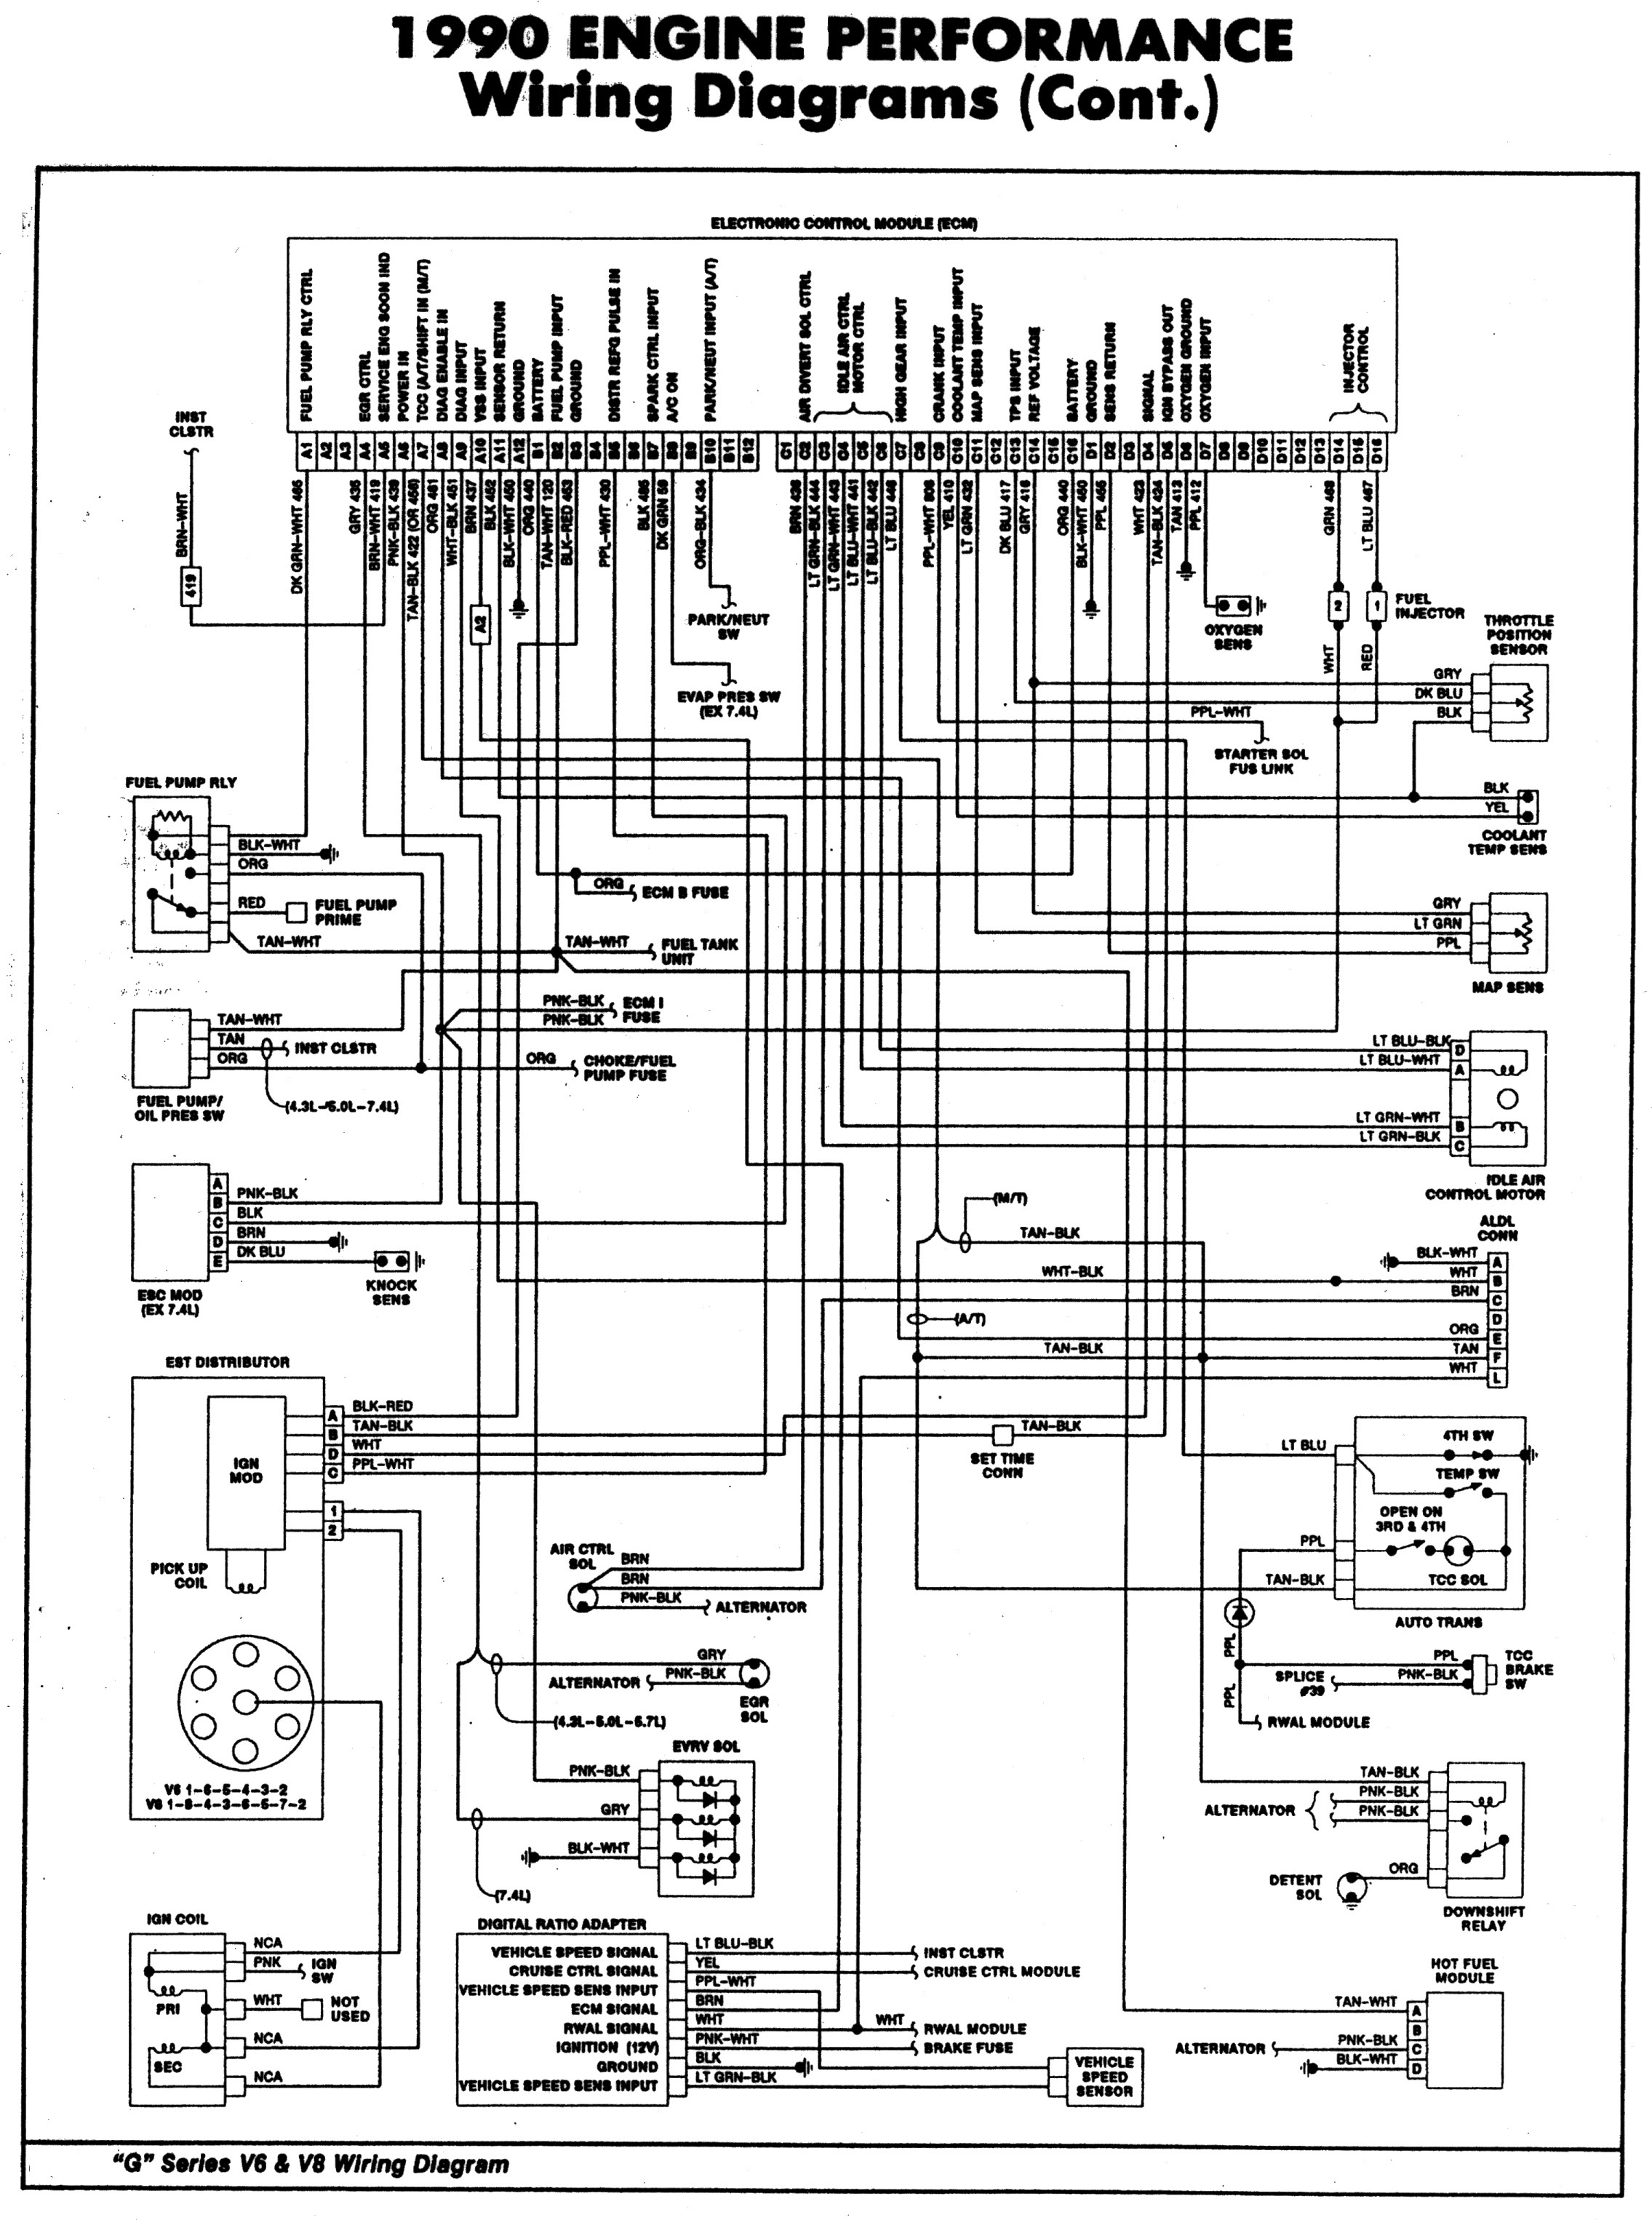 hight resolution of 1990 chevy 350 tbi wiring diagram wiring diagrams konsult fuel further 1990 chevy 350 tbi fuel system diagram on inline fuel